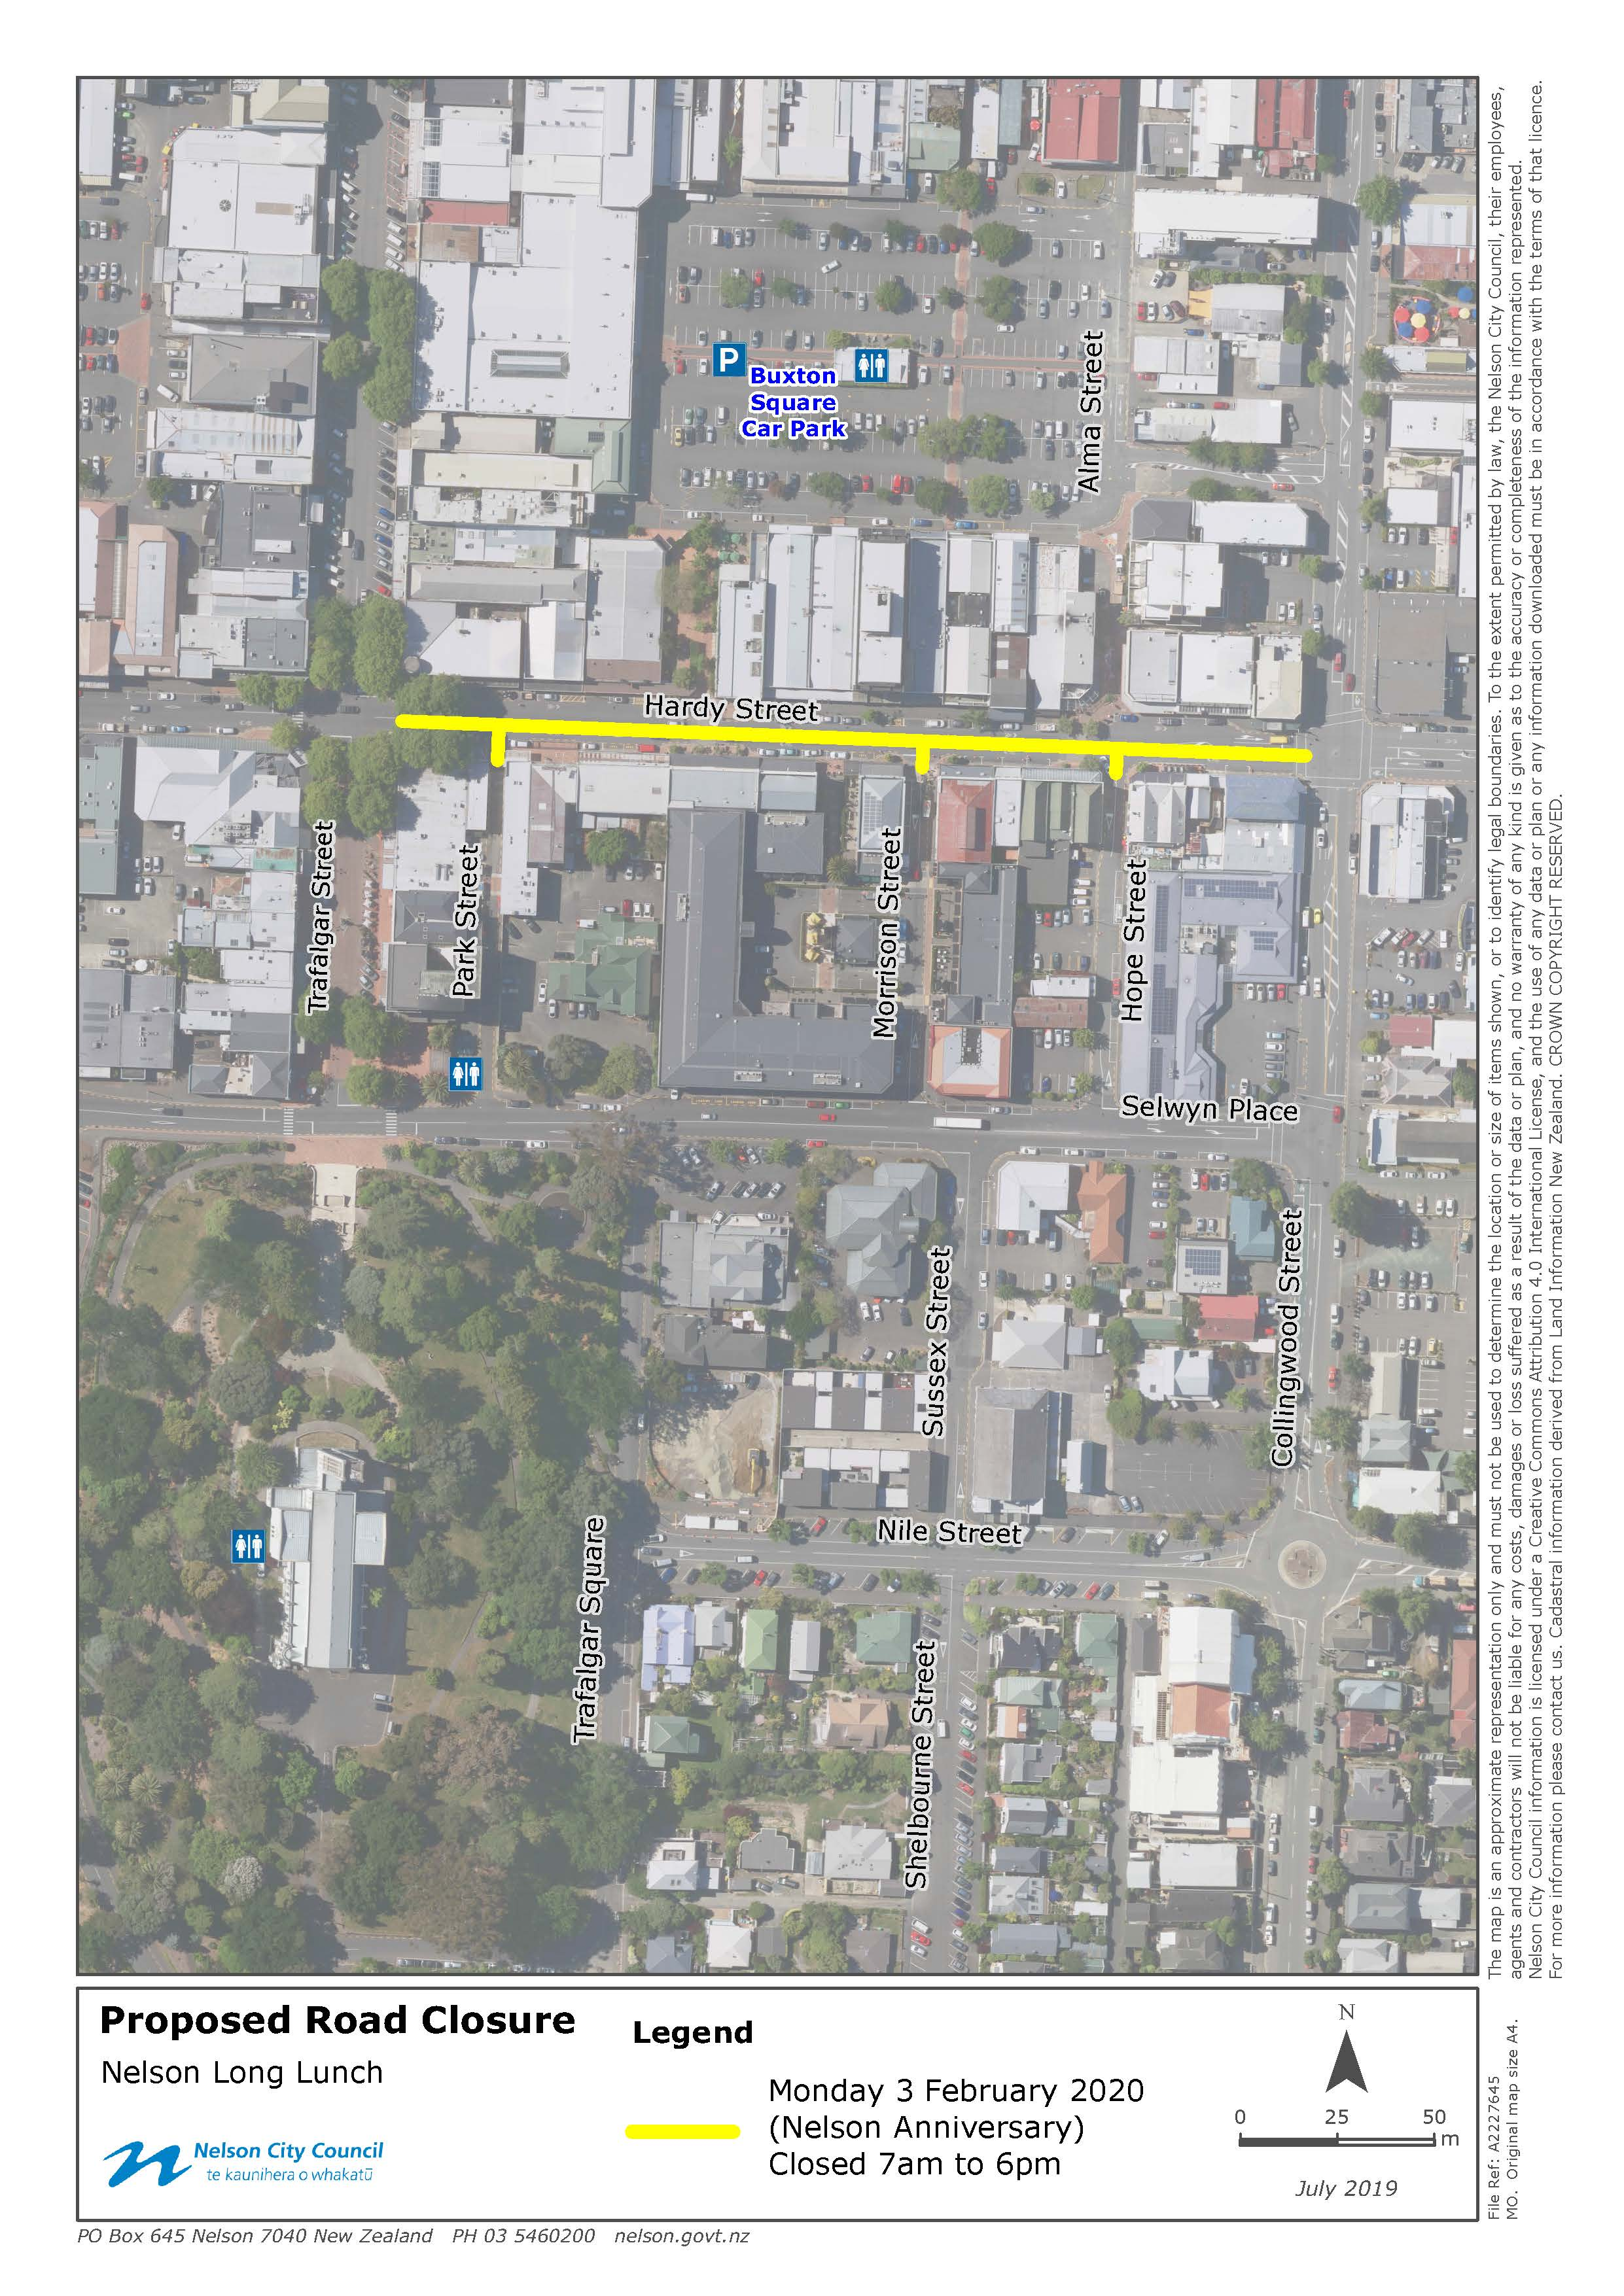 GIS 2020 Nelson Long Lunch Hardy Street Proposed Road Closure 16Jul2019 A2227645